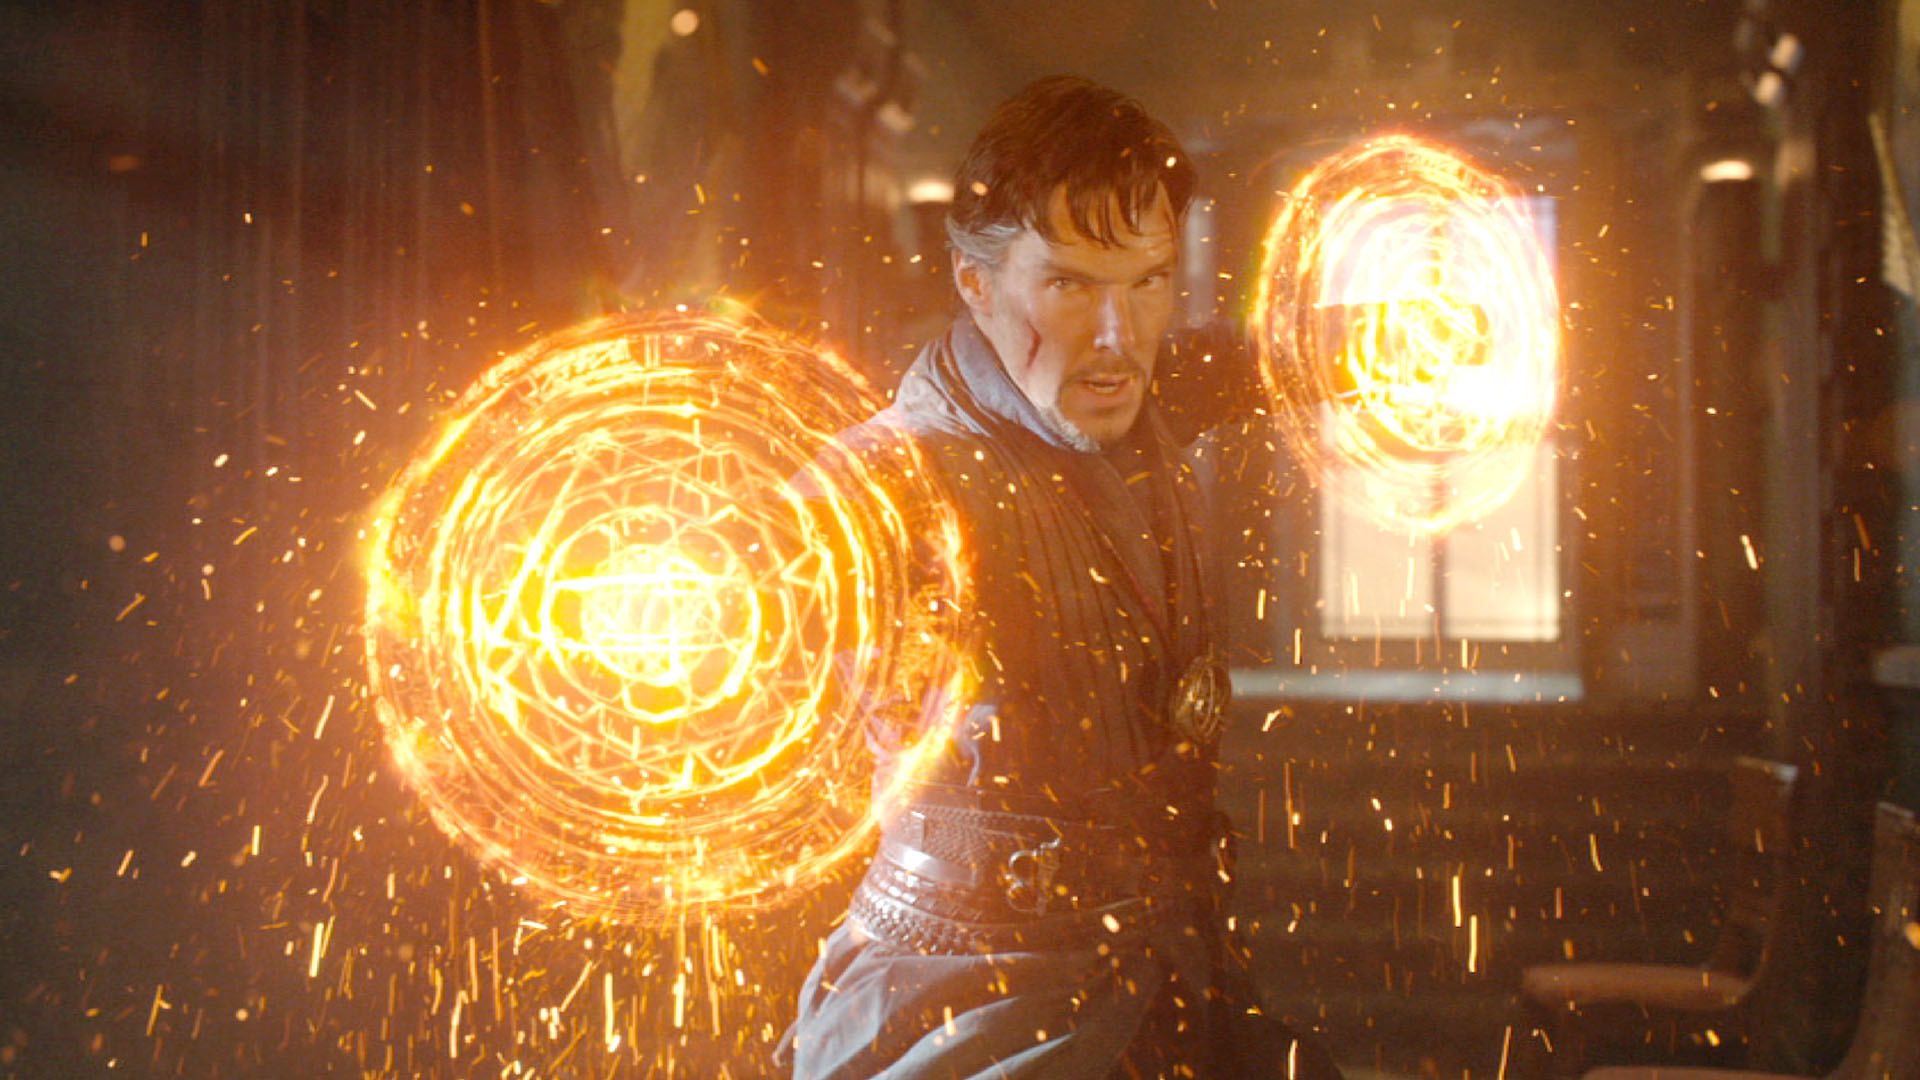 Dr Strange (Benedict Cumberbatch) wields magic in Doctor Strange (2016)